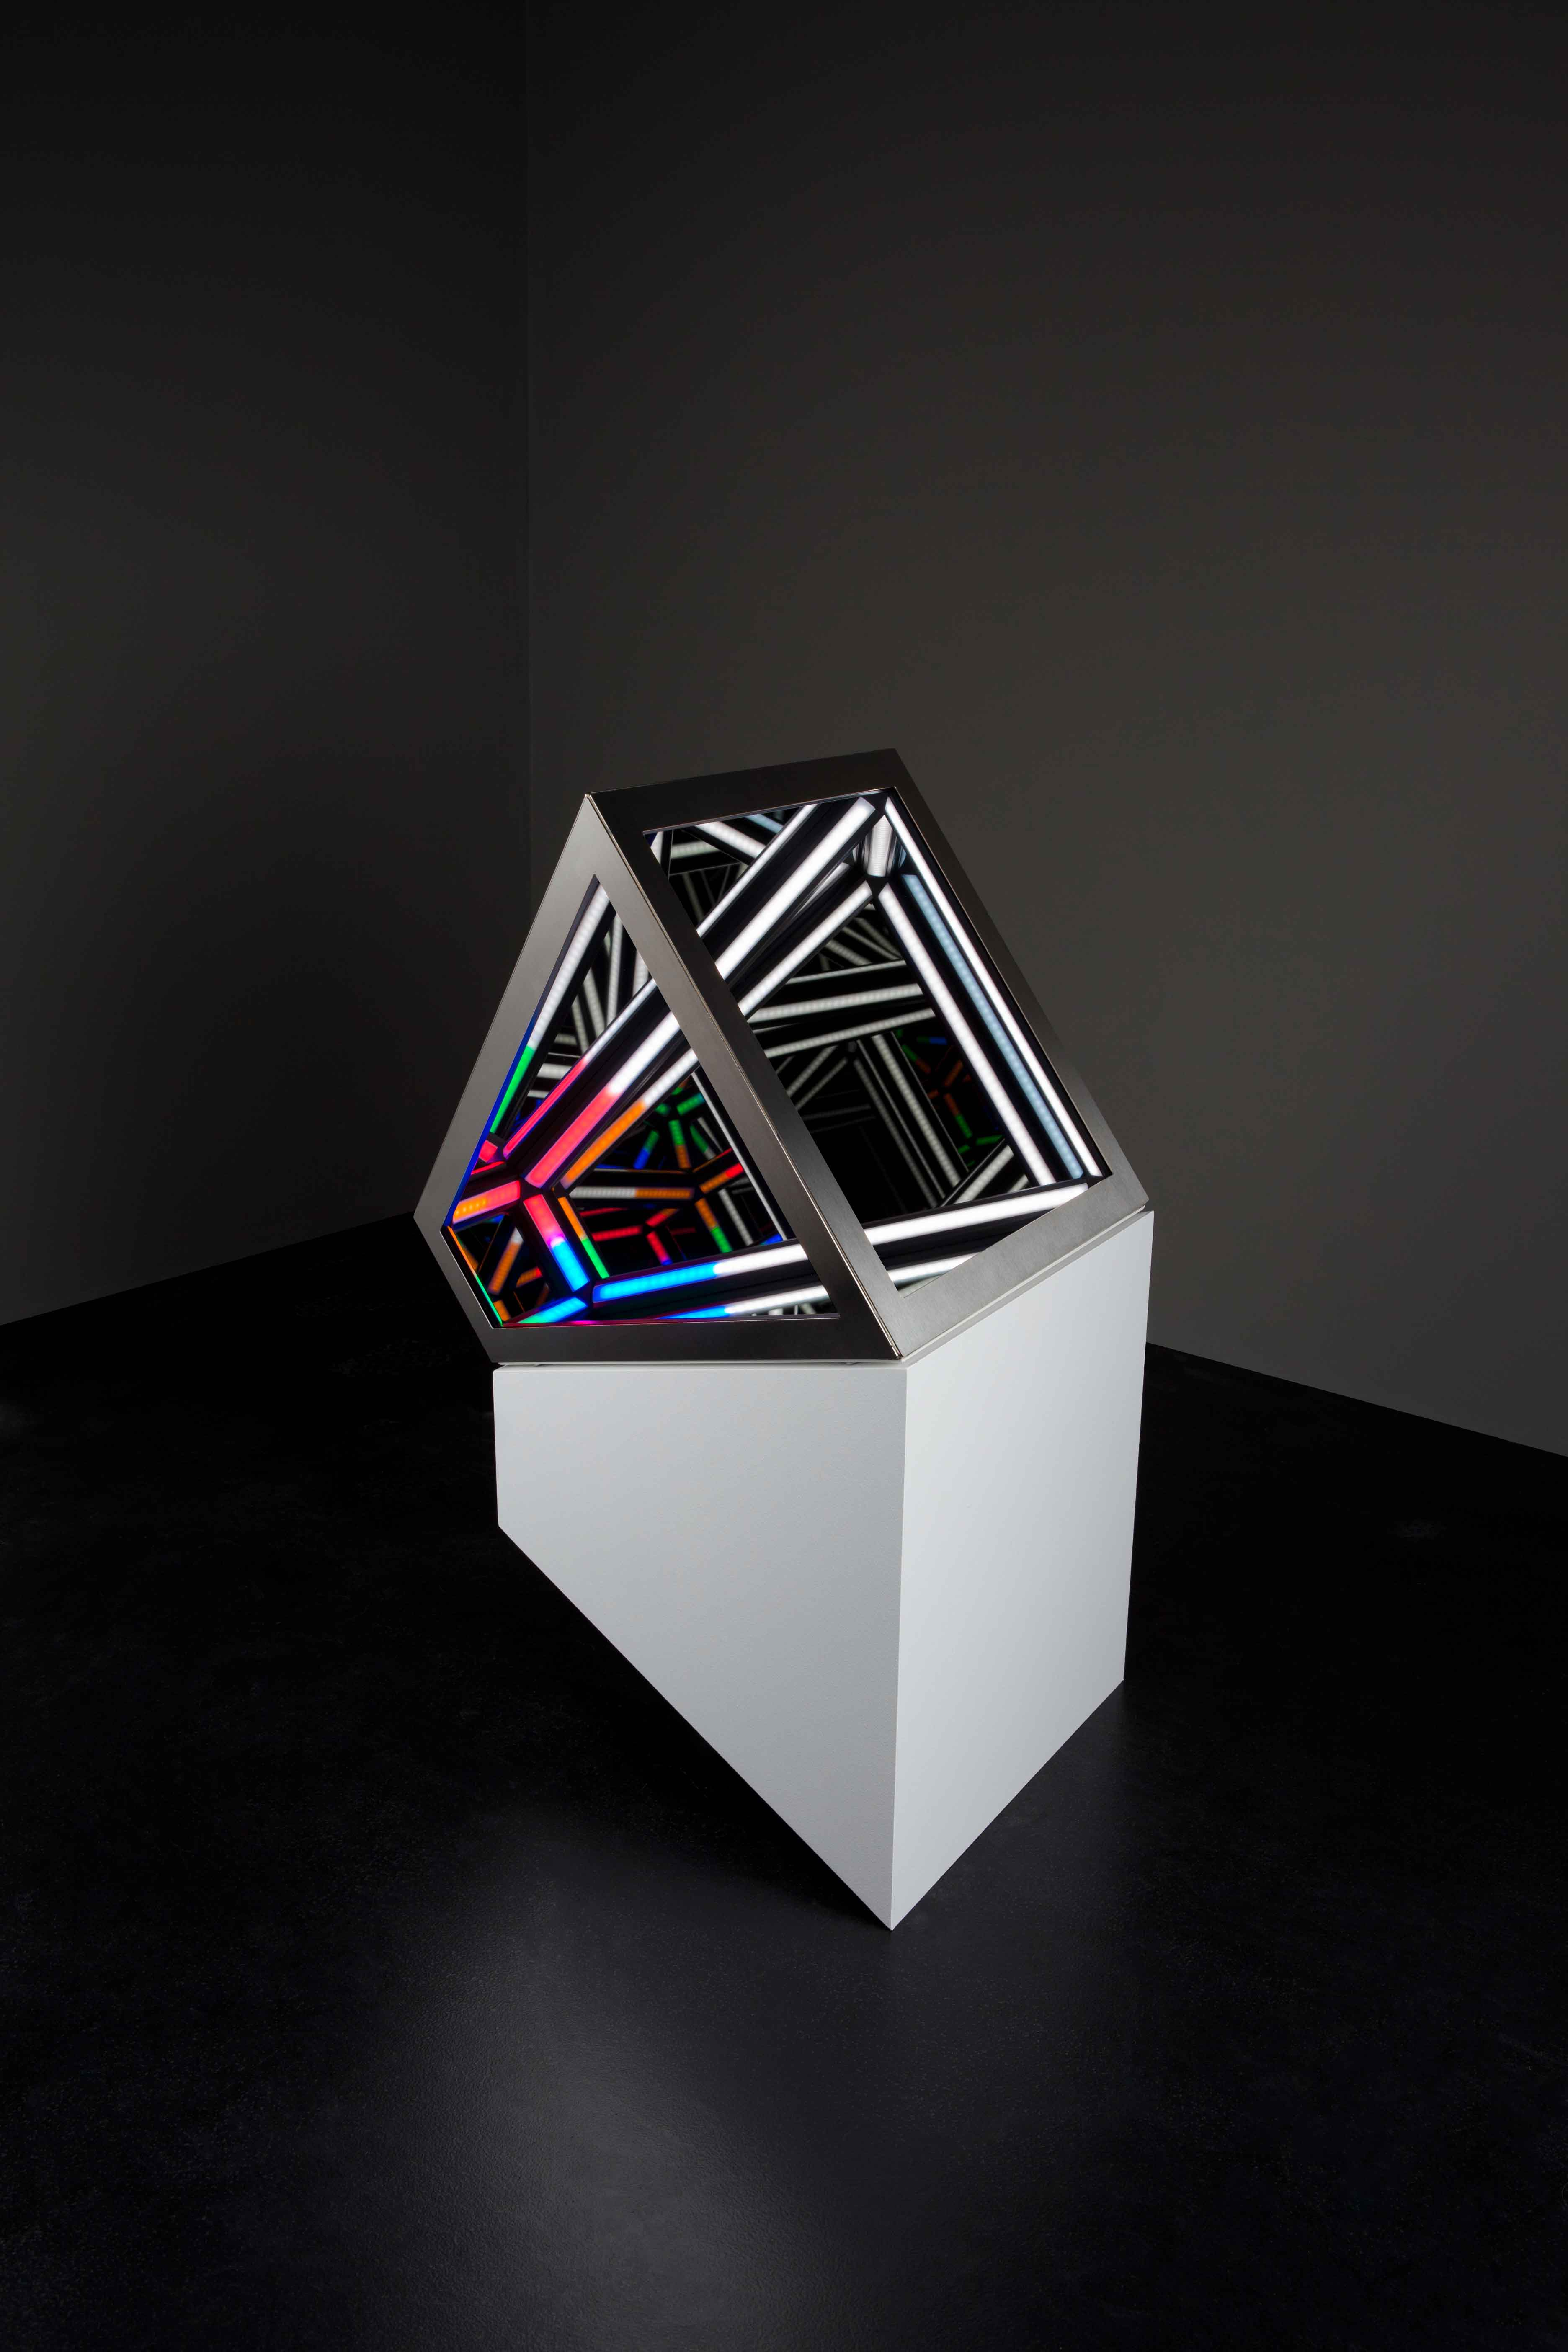 Dual III, 2016 <br>wood, reflective glass, mirror, stainless steel, MDF and LED lighting, 74 x 40.5 x 52 cm